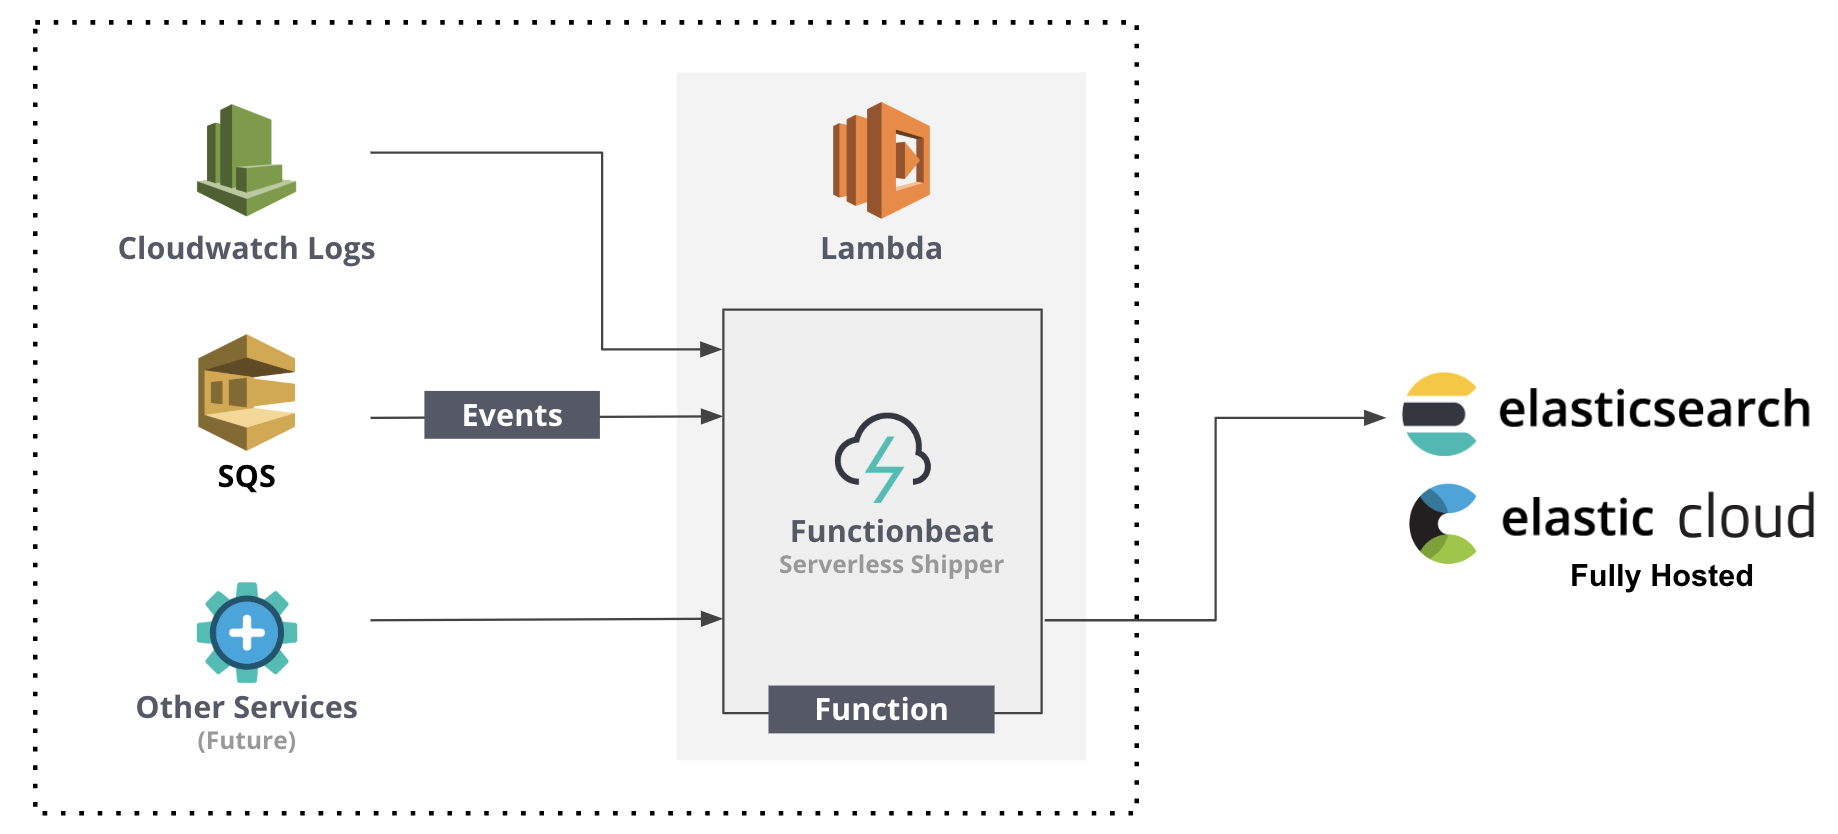 Functionbeat is the serverless data shipper for the Elastic Stack